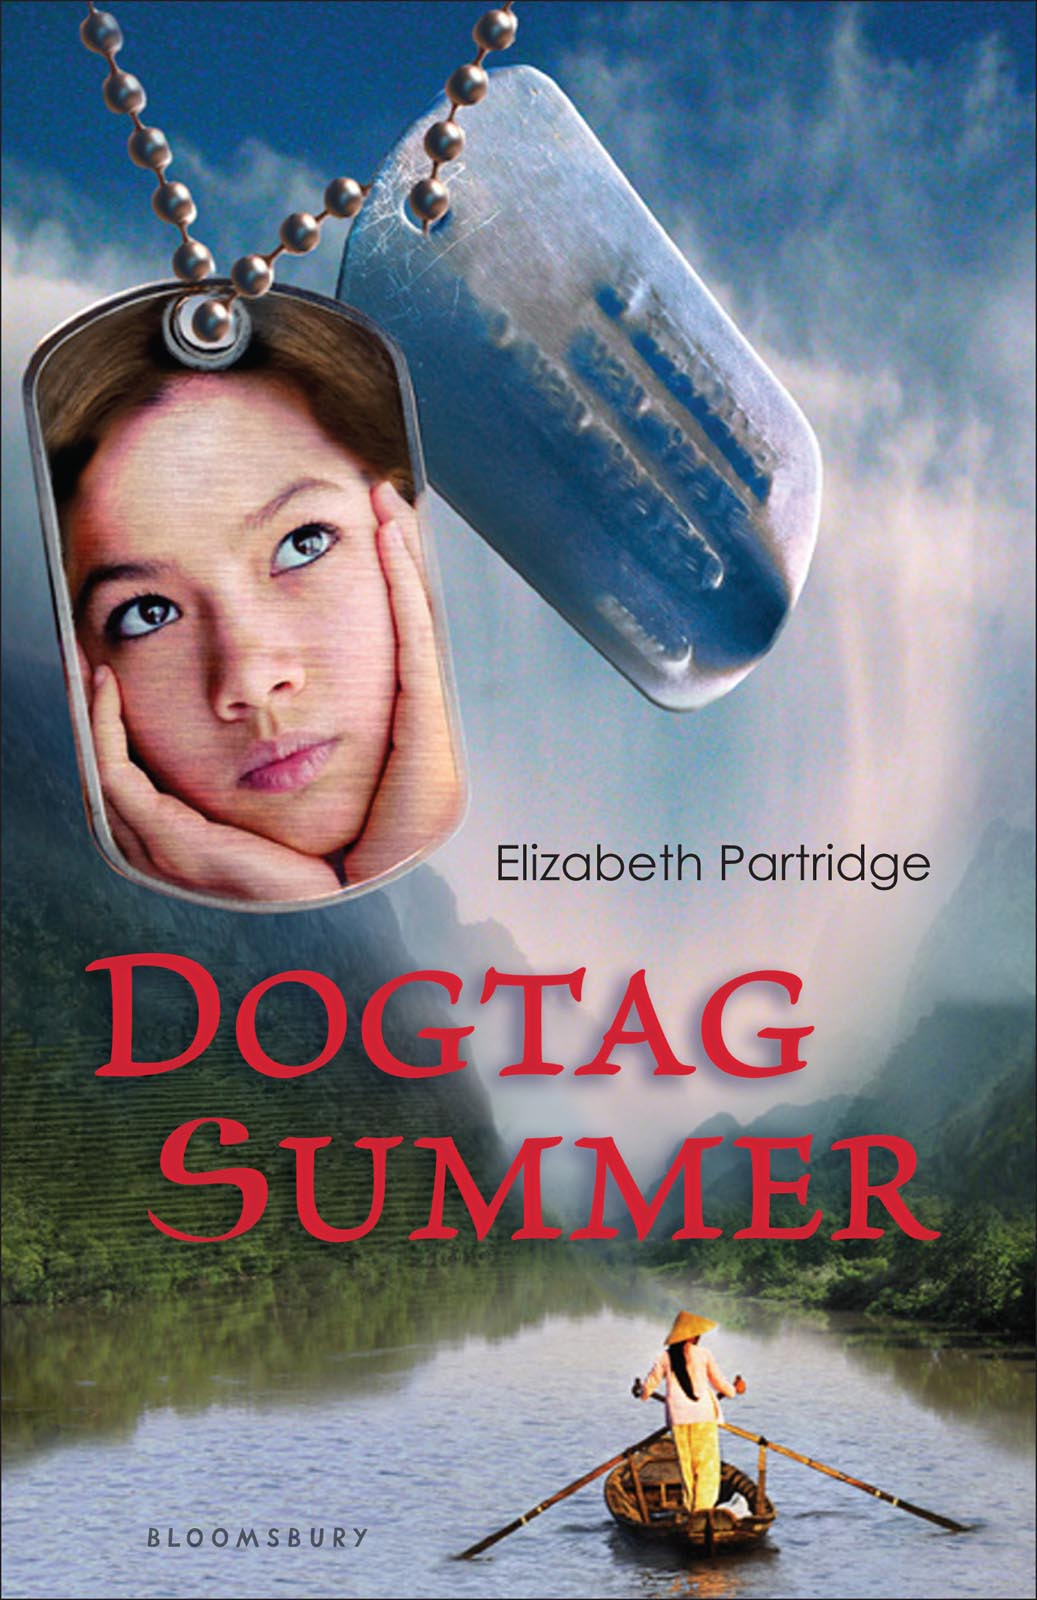 """DogTag Summer - Tracy—or Tuyet—always knew she was different. The villagers in Vietnam scornfully called her con-lai, or """"half-breed,""""because her father was an American GI. Yet she's not sure she fits in with her new family in California, either.When Tracy finds a soldier's dogtag hidden by her adoptive father (a Vietnam vet himself), she's haunted by memories from her life in Vietnam: hiding from Vietcong soldiers, being dragged away from her village by a GI, the American Boss Man's knife at her throat.Tracy struggles to reconcile her harrowing memories of Vietnam with her life in California. Where is home when you're a child of war, caught between two countries, two identities? When is love enough to carry you through what you've discovered about your past? About your father's past?Bloomsbury Children's Books"""